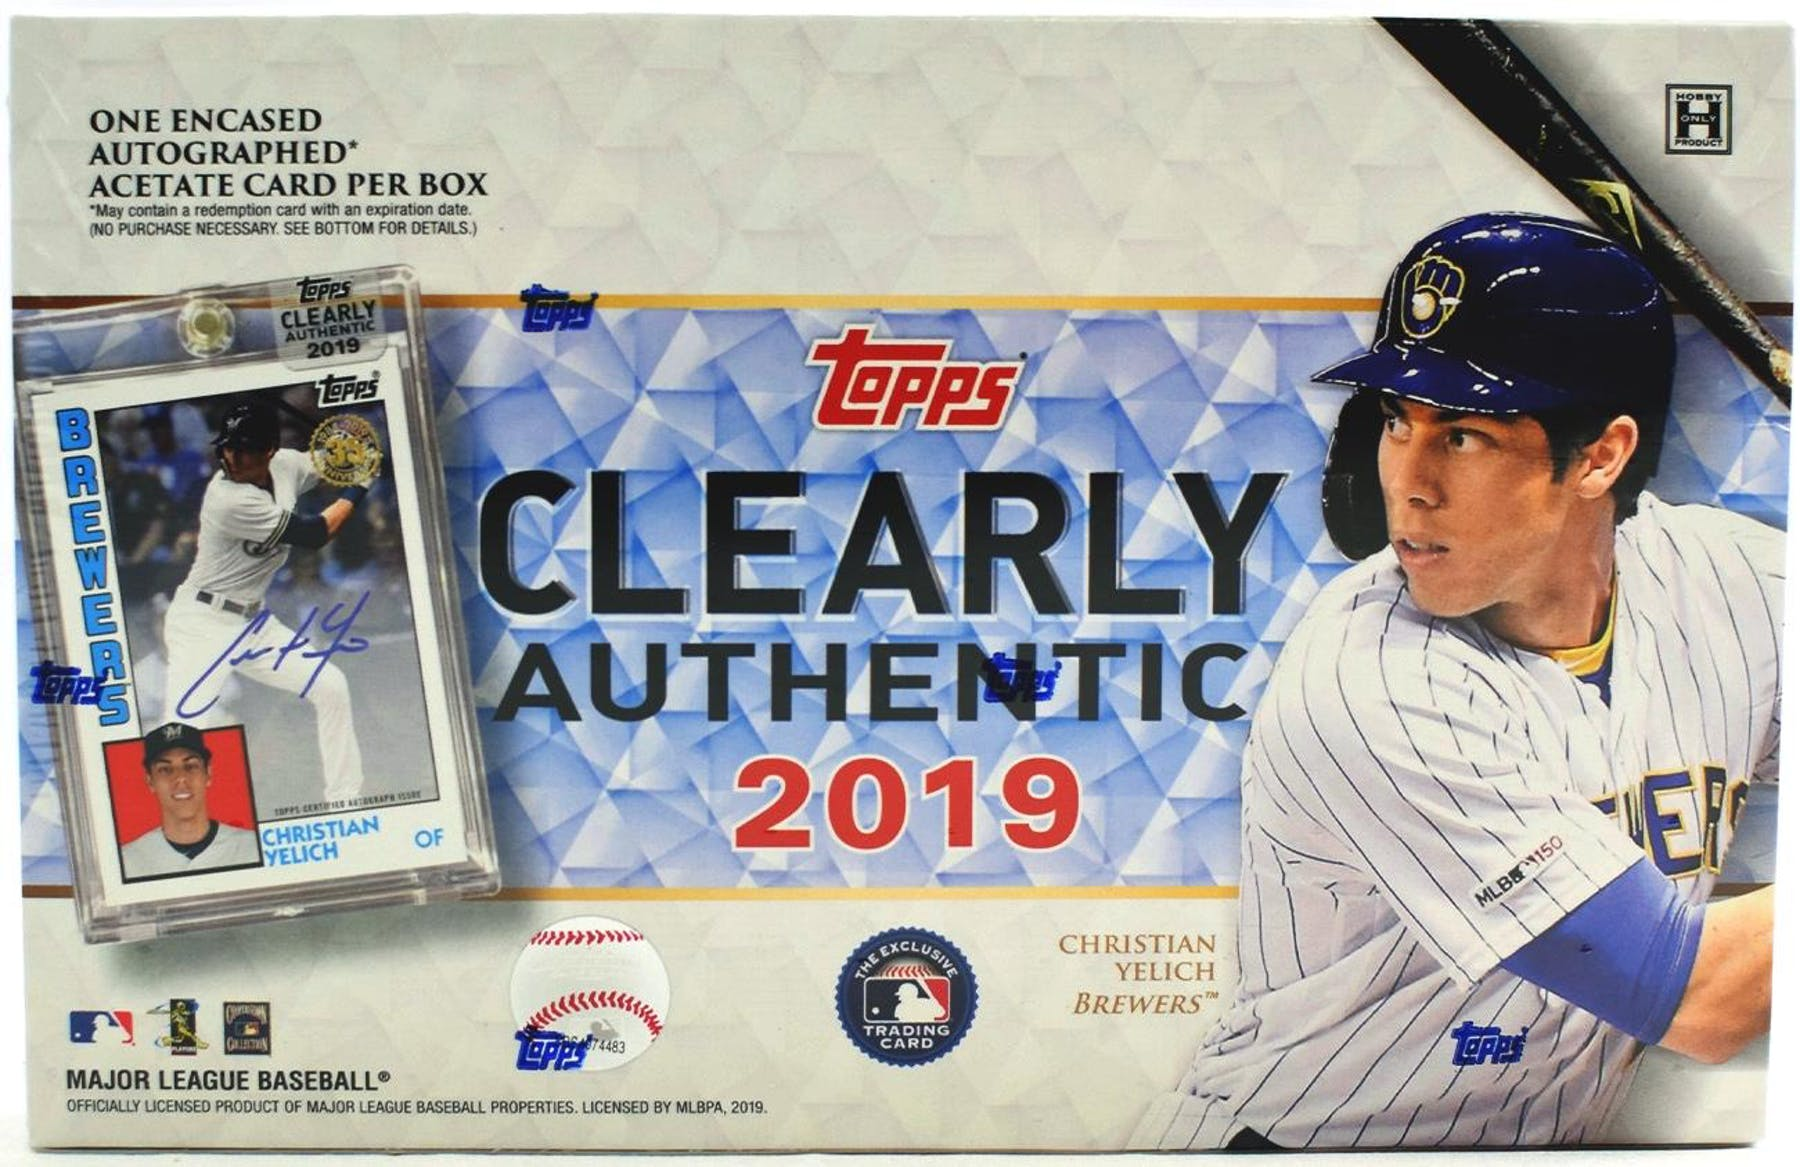 2019 Topps Clearly Authentic Baseball Hobby Box | Eastridge Sports Cards